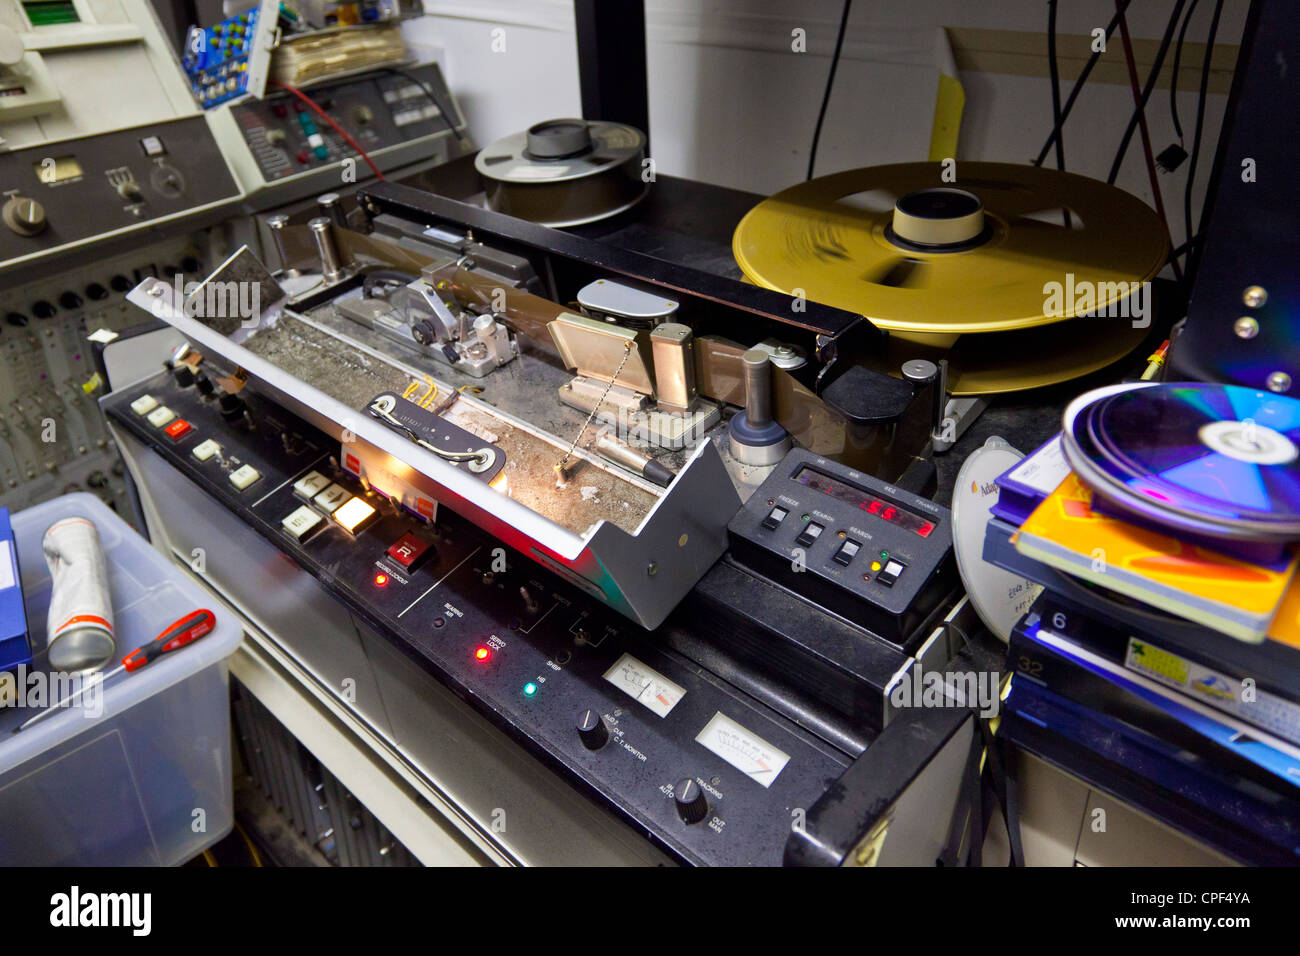 Vintage 2-inch quadruplex broadcast videotape recorder from 1970s. JMH6020 - Stock Image